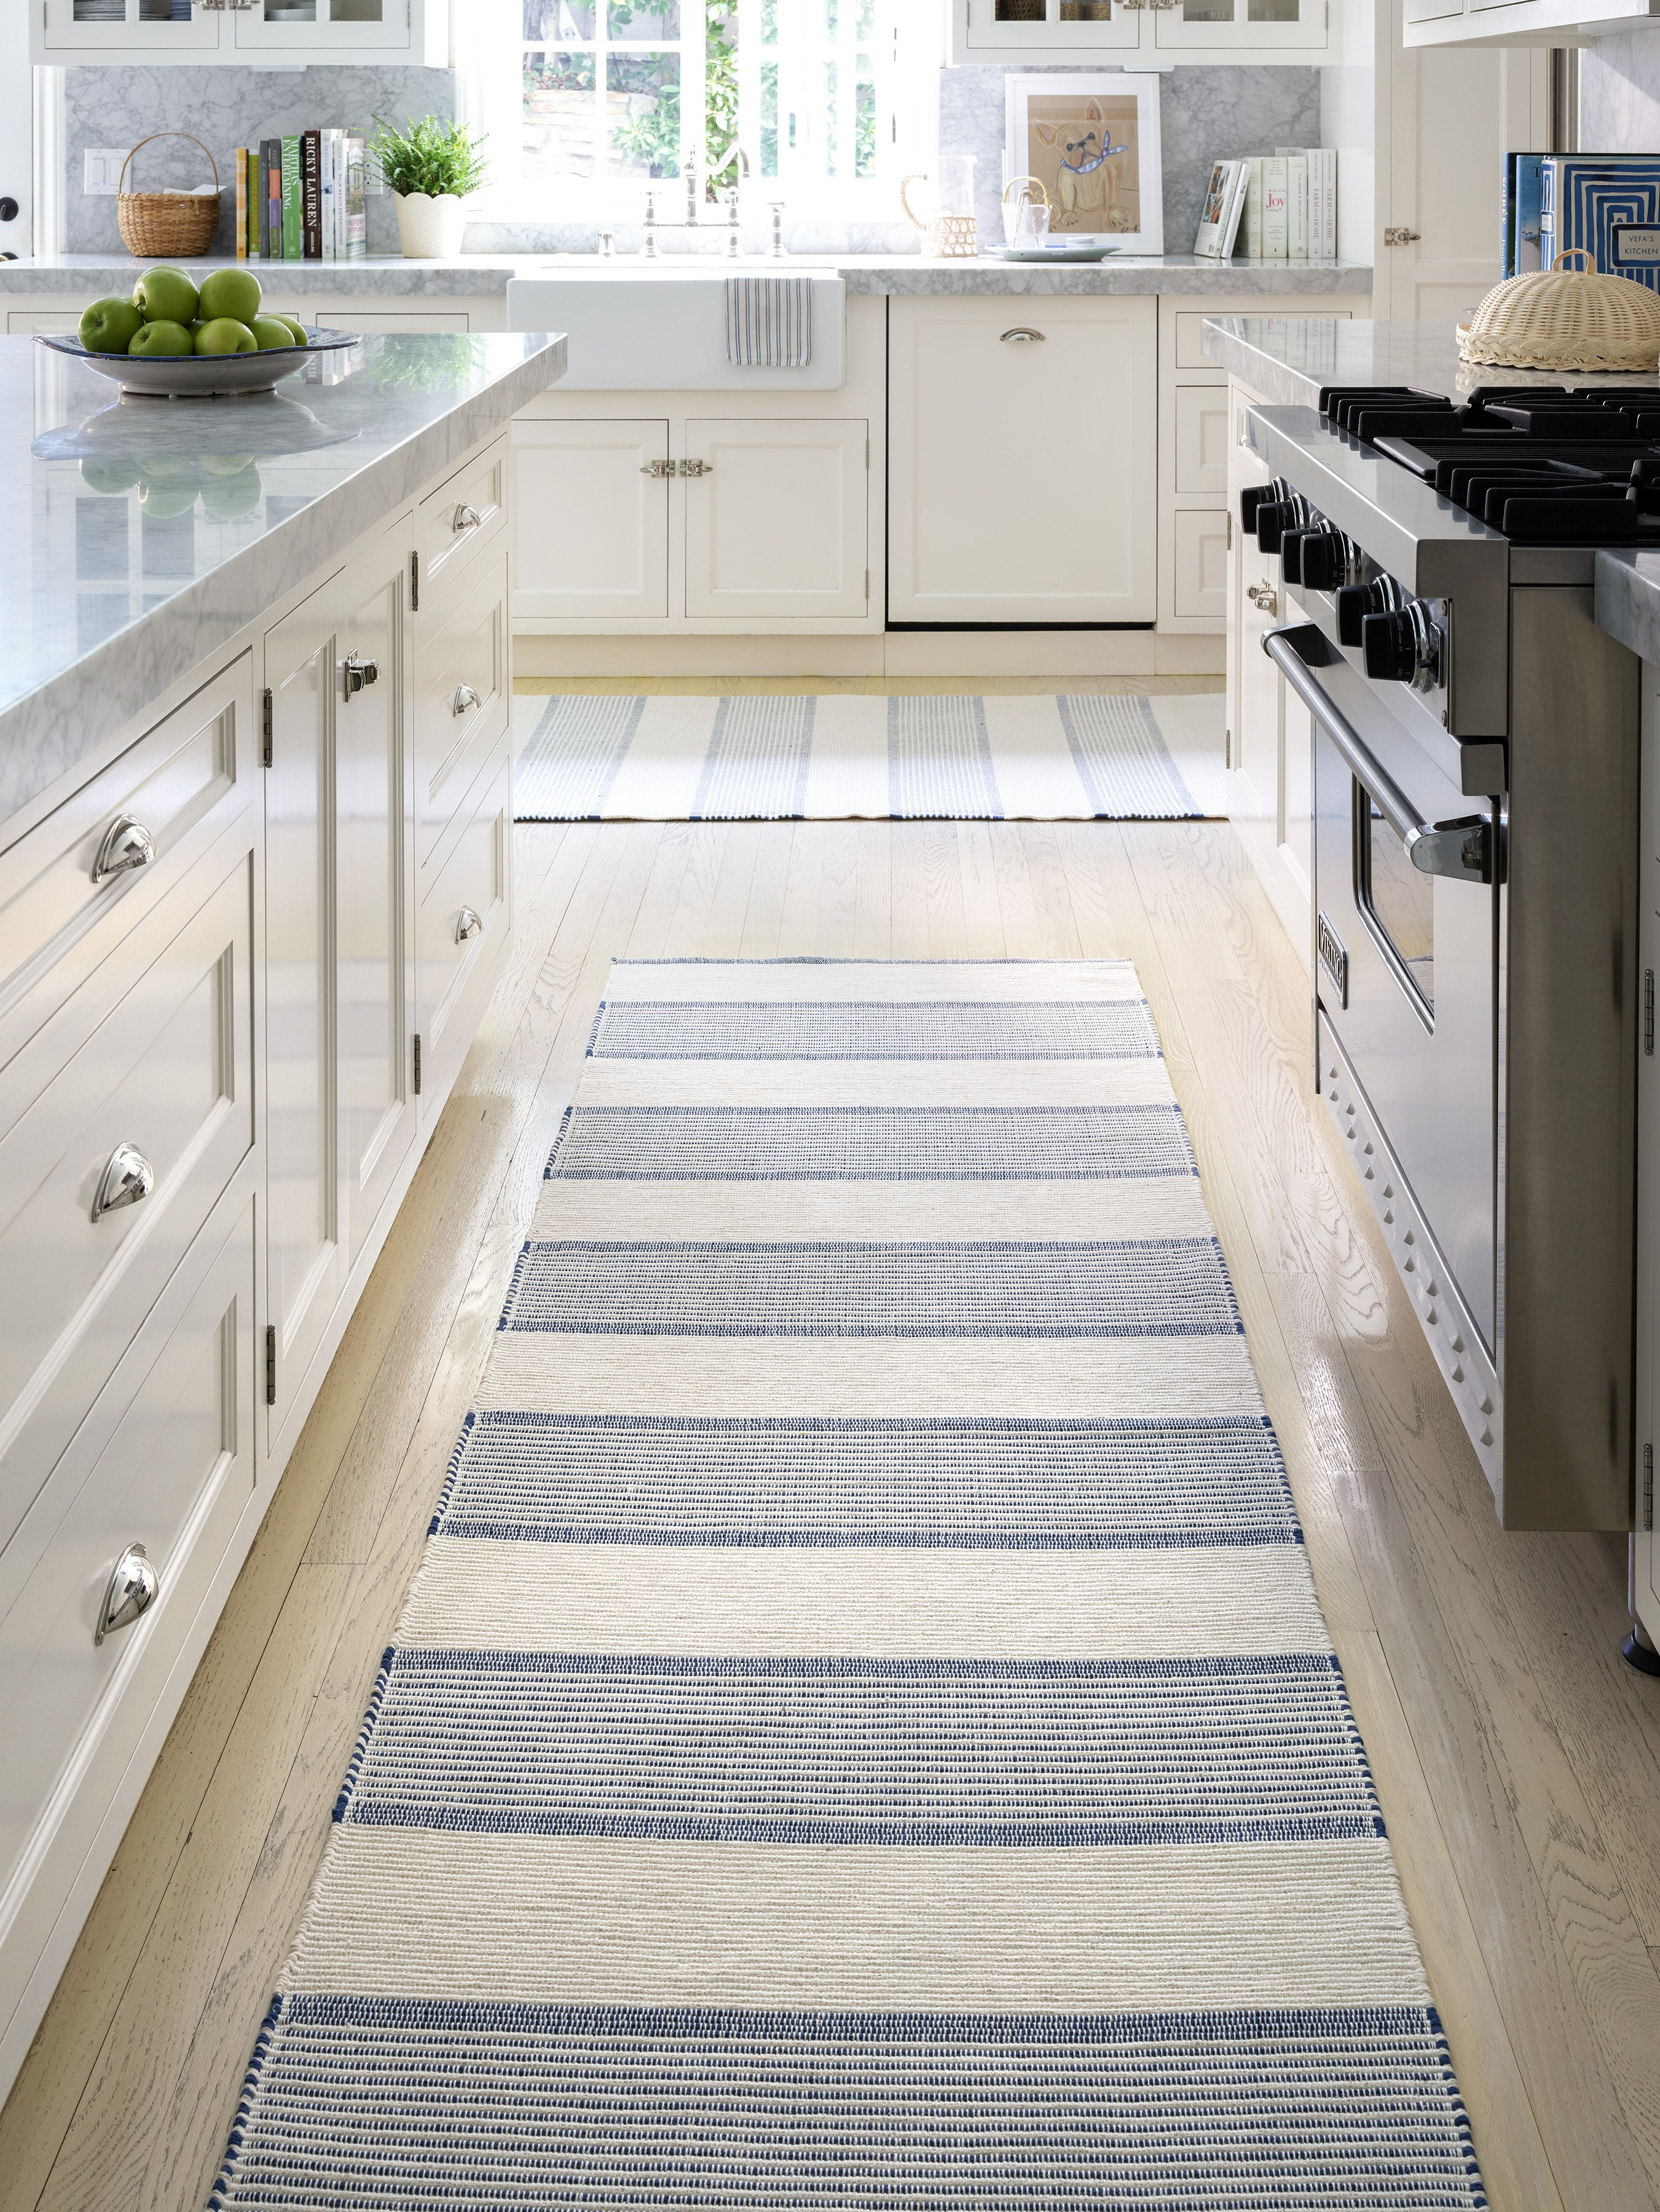 Update your kitchen with a new rug from Dash & Albert ...